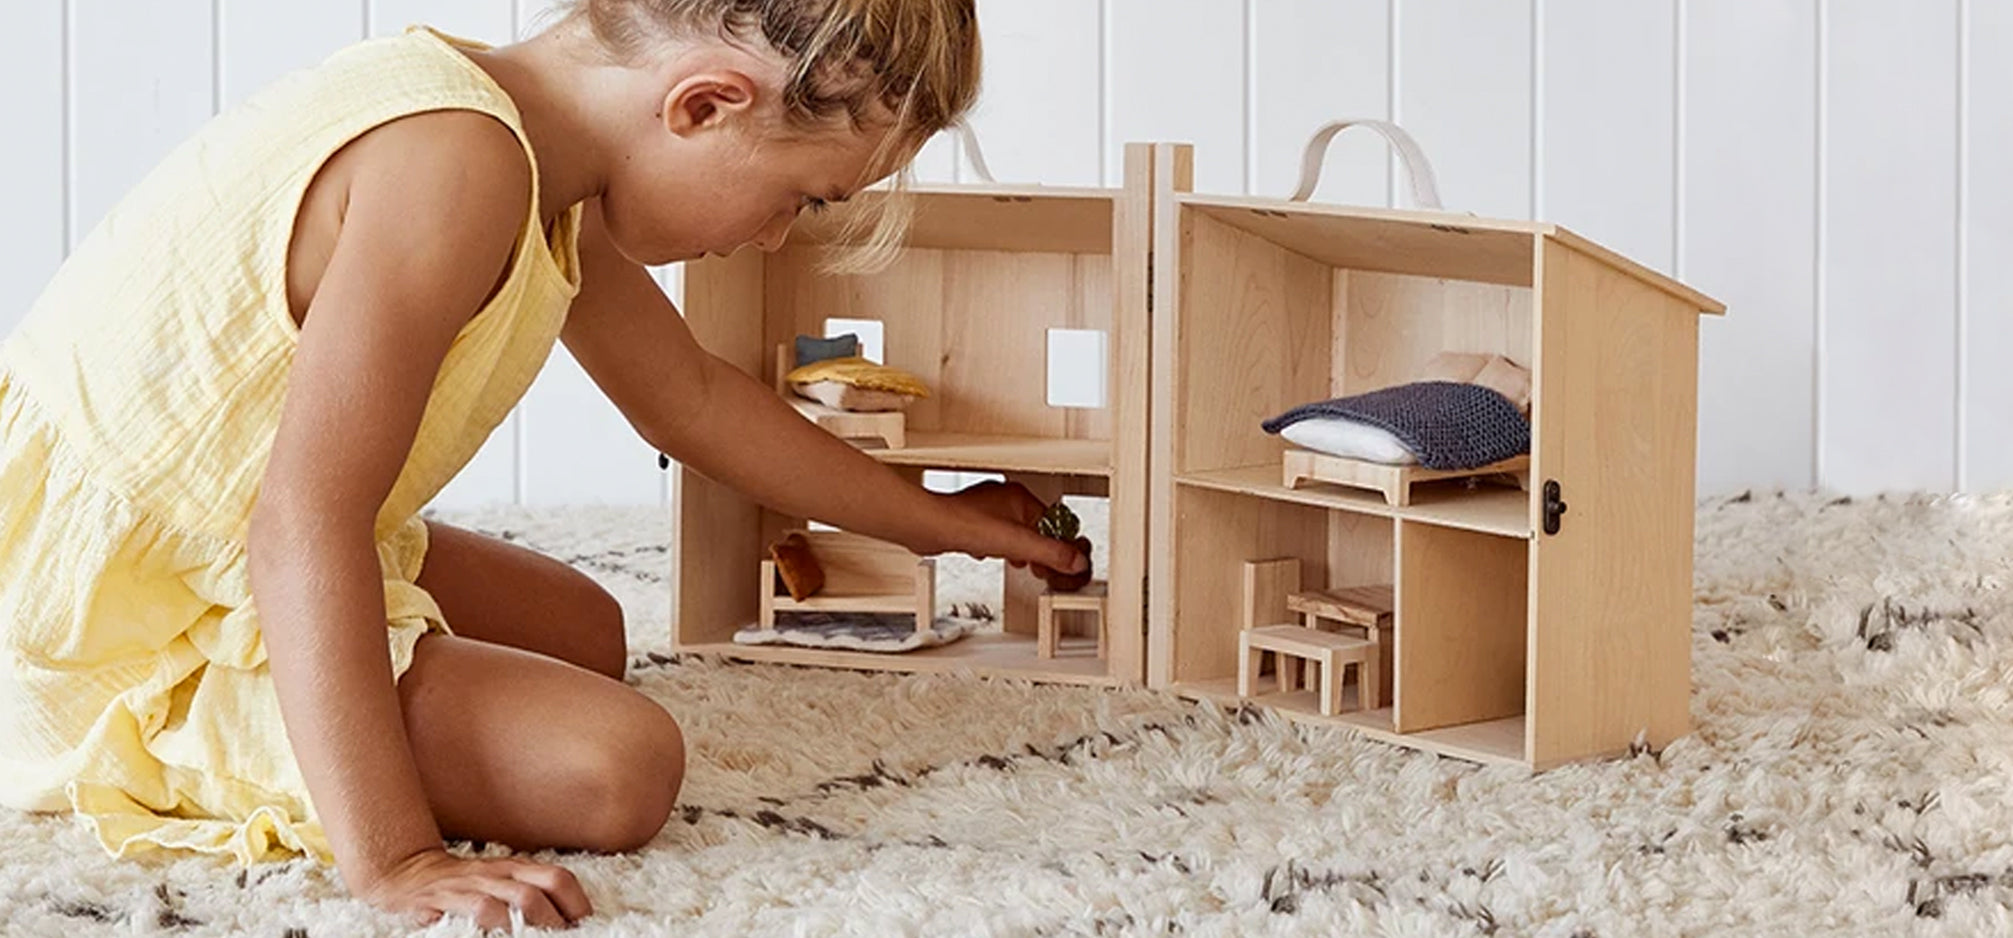 A girl playing with a wooden doll house.